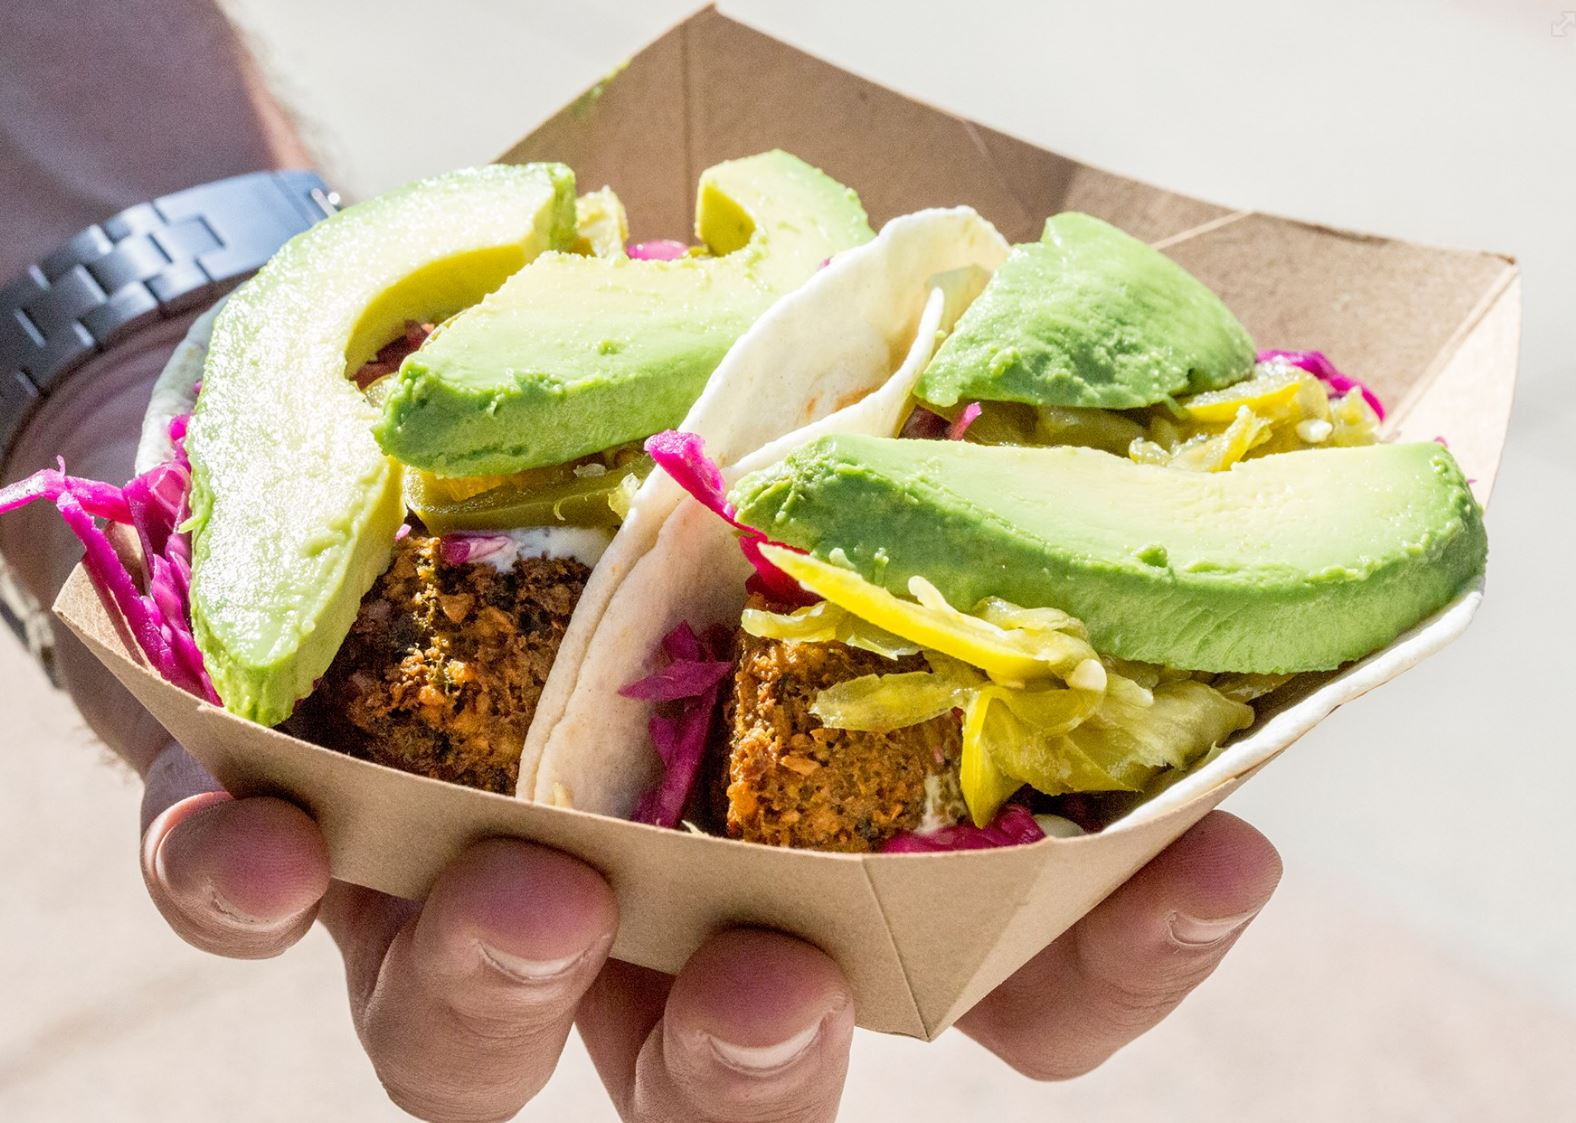 Jan 28 | Falasophy is Opening in 4th Street Market - Free Tacos For First 100 Guests!